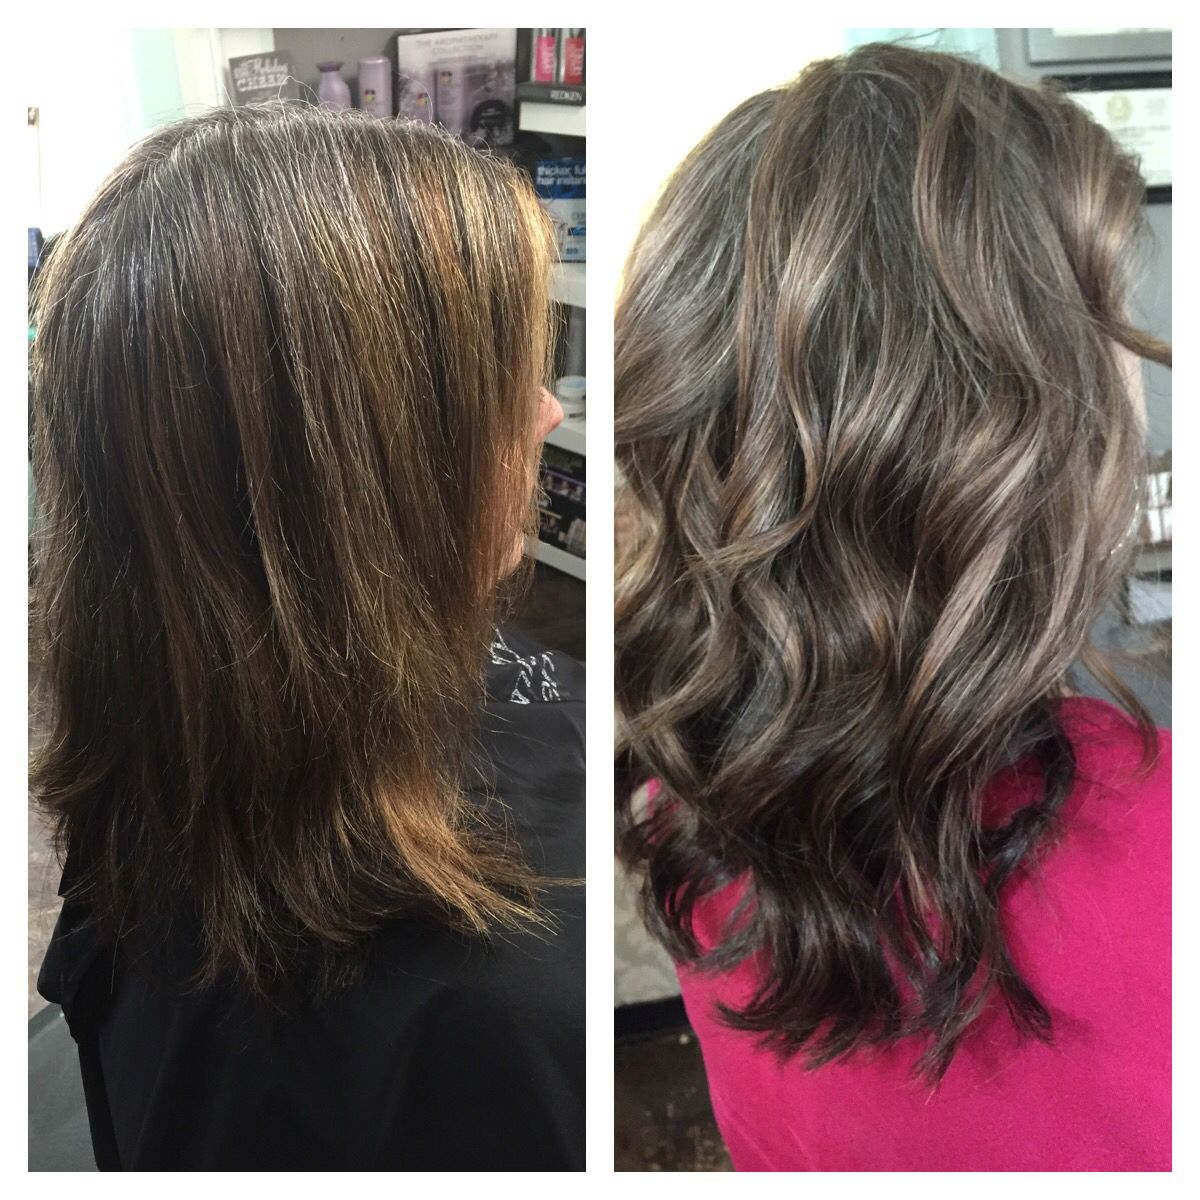 Before And After Ash Highlights With Ash Brown By Tayler Namanny Blending Gray Hair Ash Brown Hair With Highlights Gray Hair Highlights